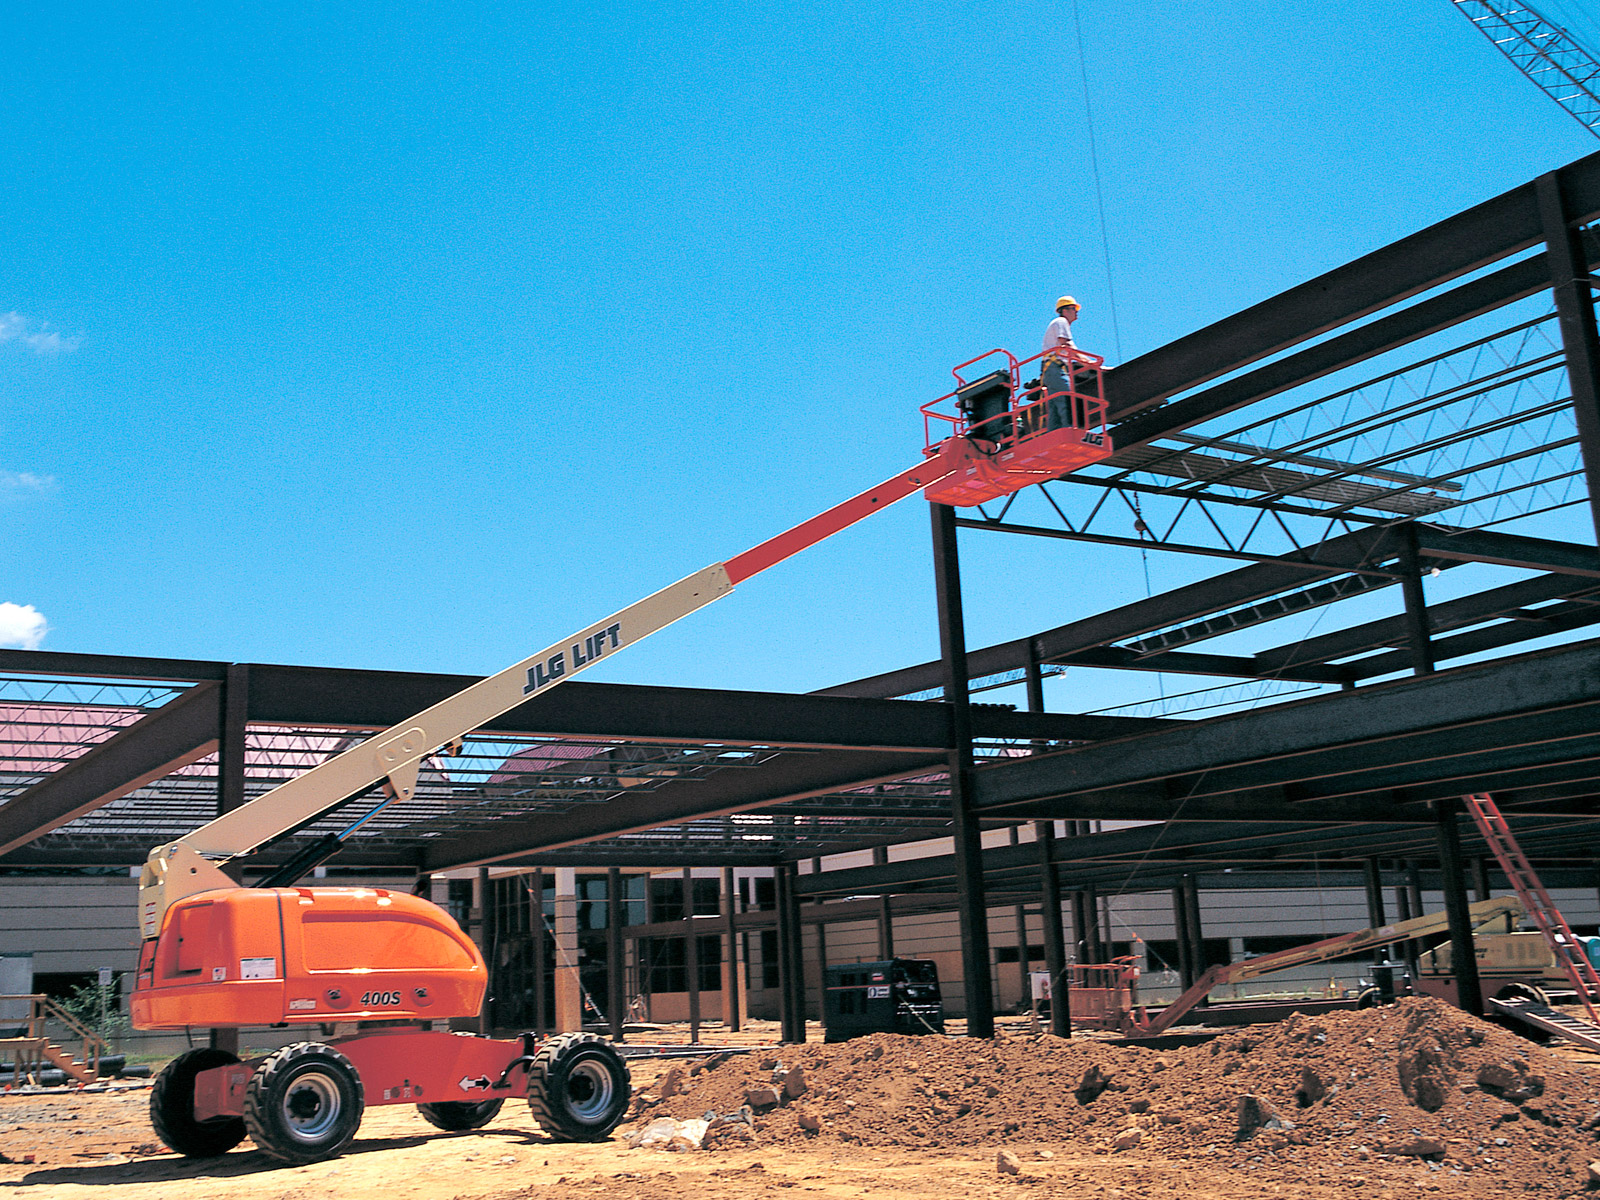 400s construction?w=100 400s telescopic boom lift jlg  at crackthecode.co